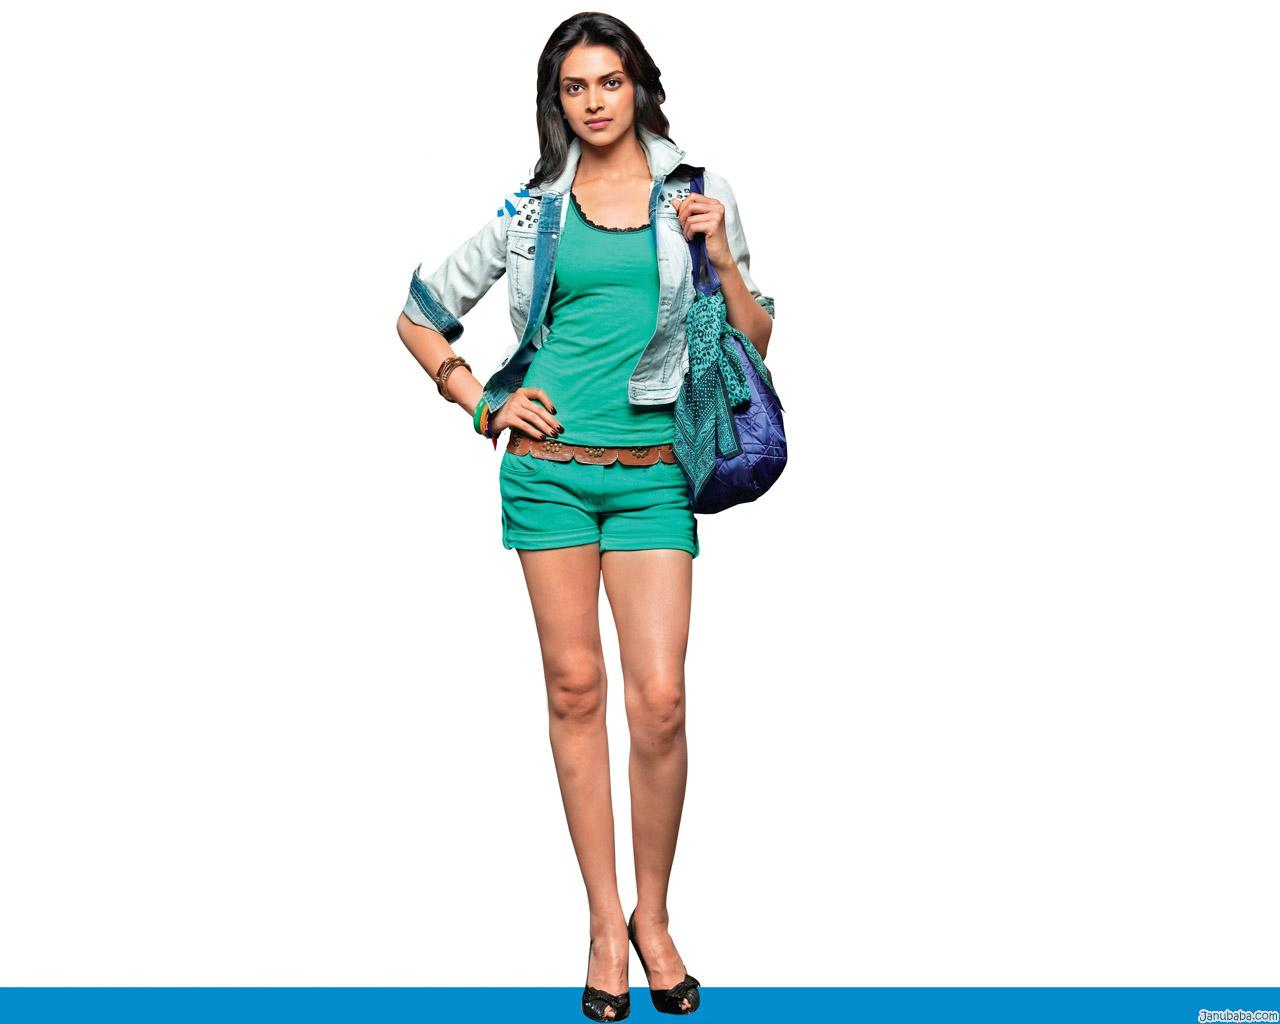 Deepika in ocean green shorts -  Deepika in SHORTS!